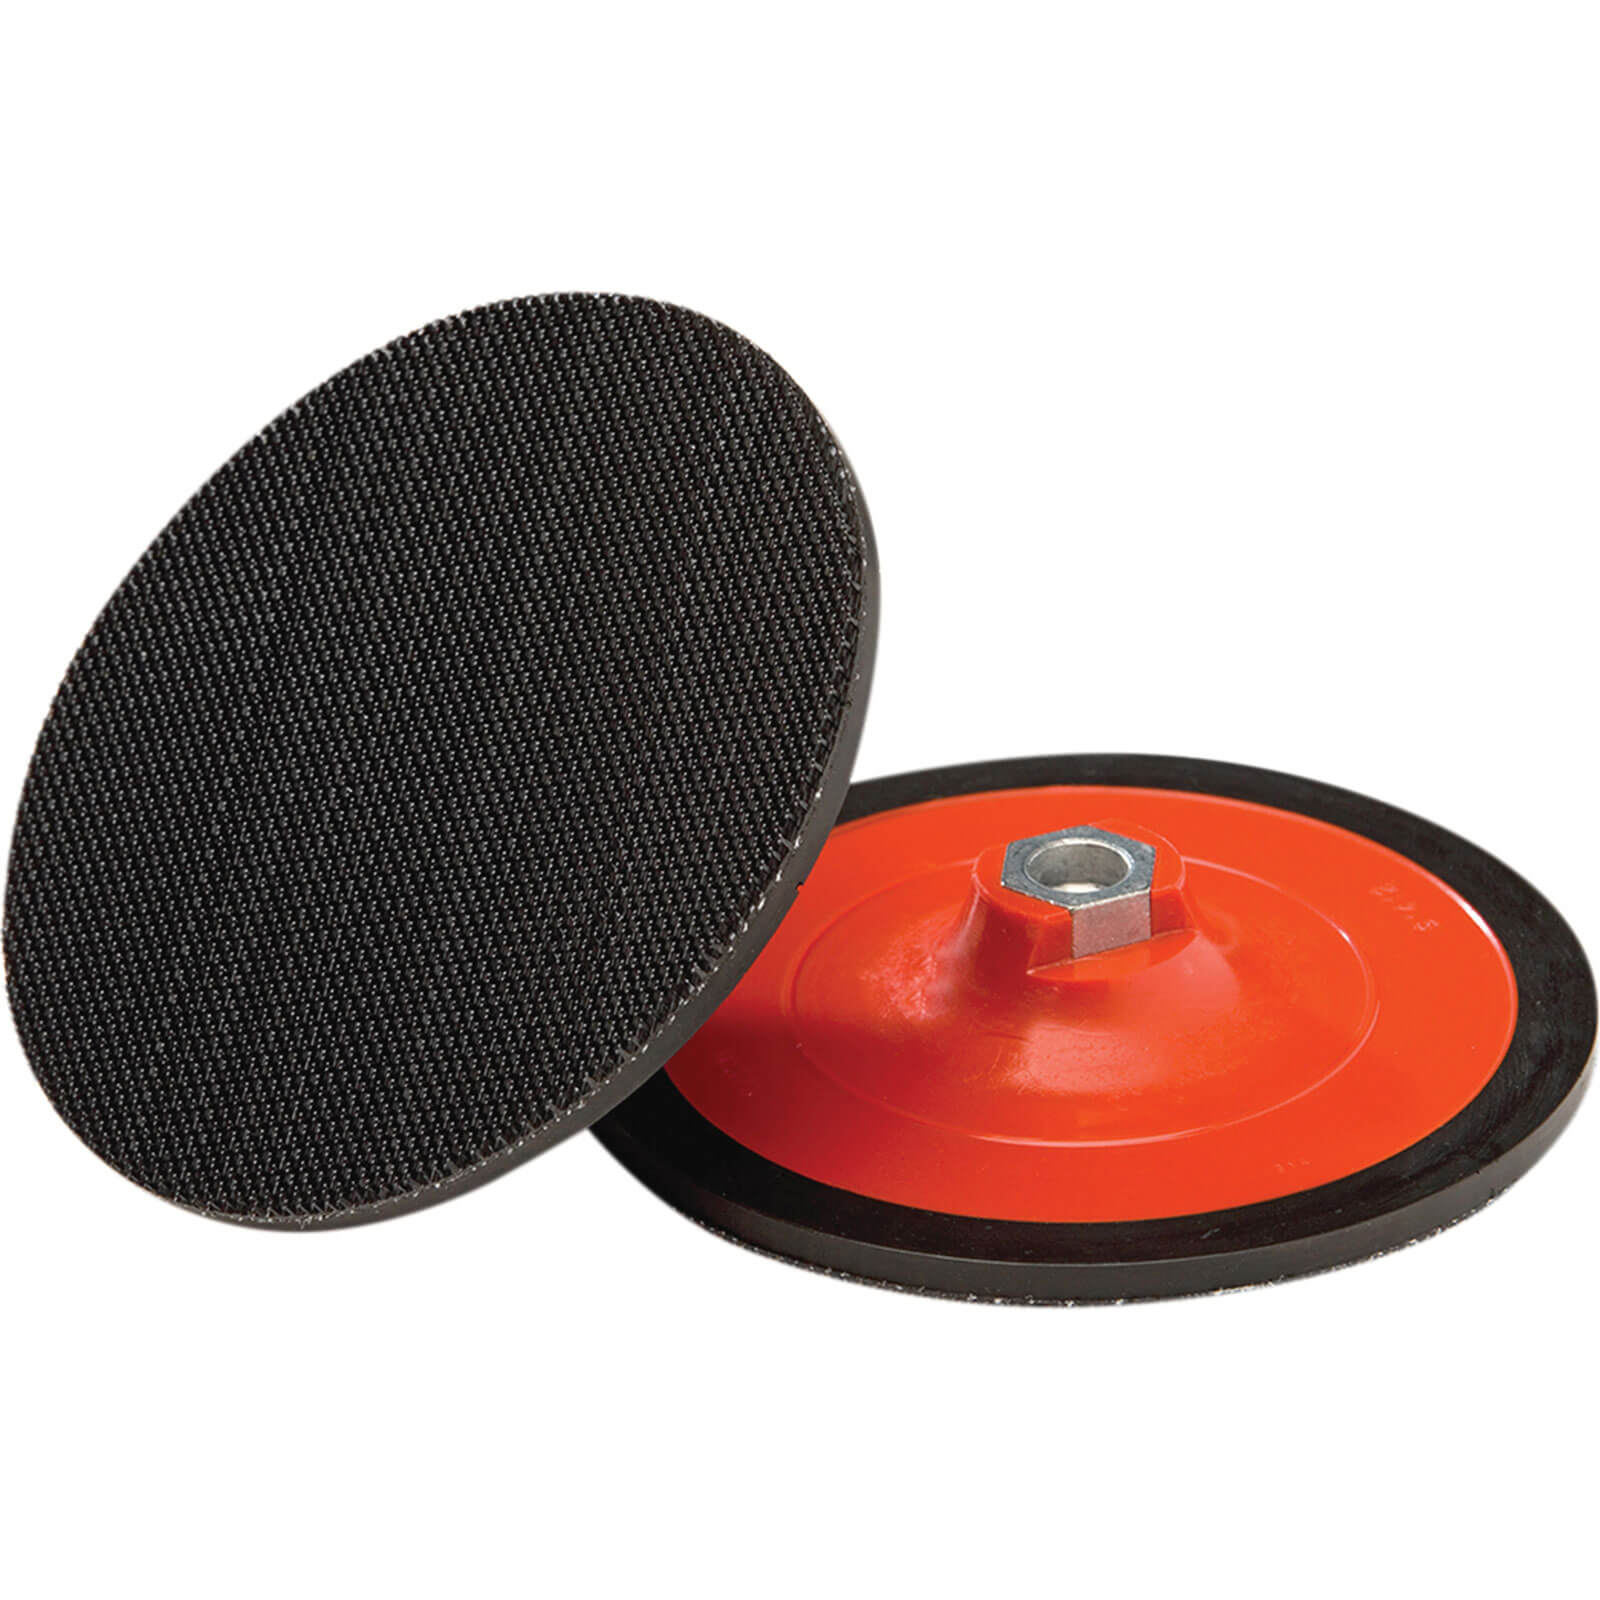 Image of Flexipad Extragrip Backing Pad 115mm